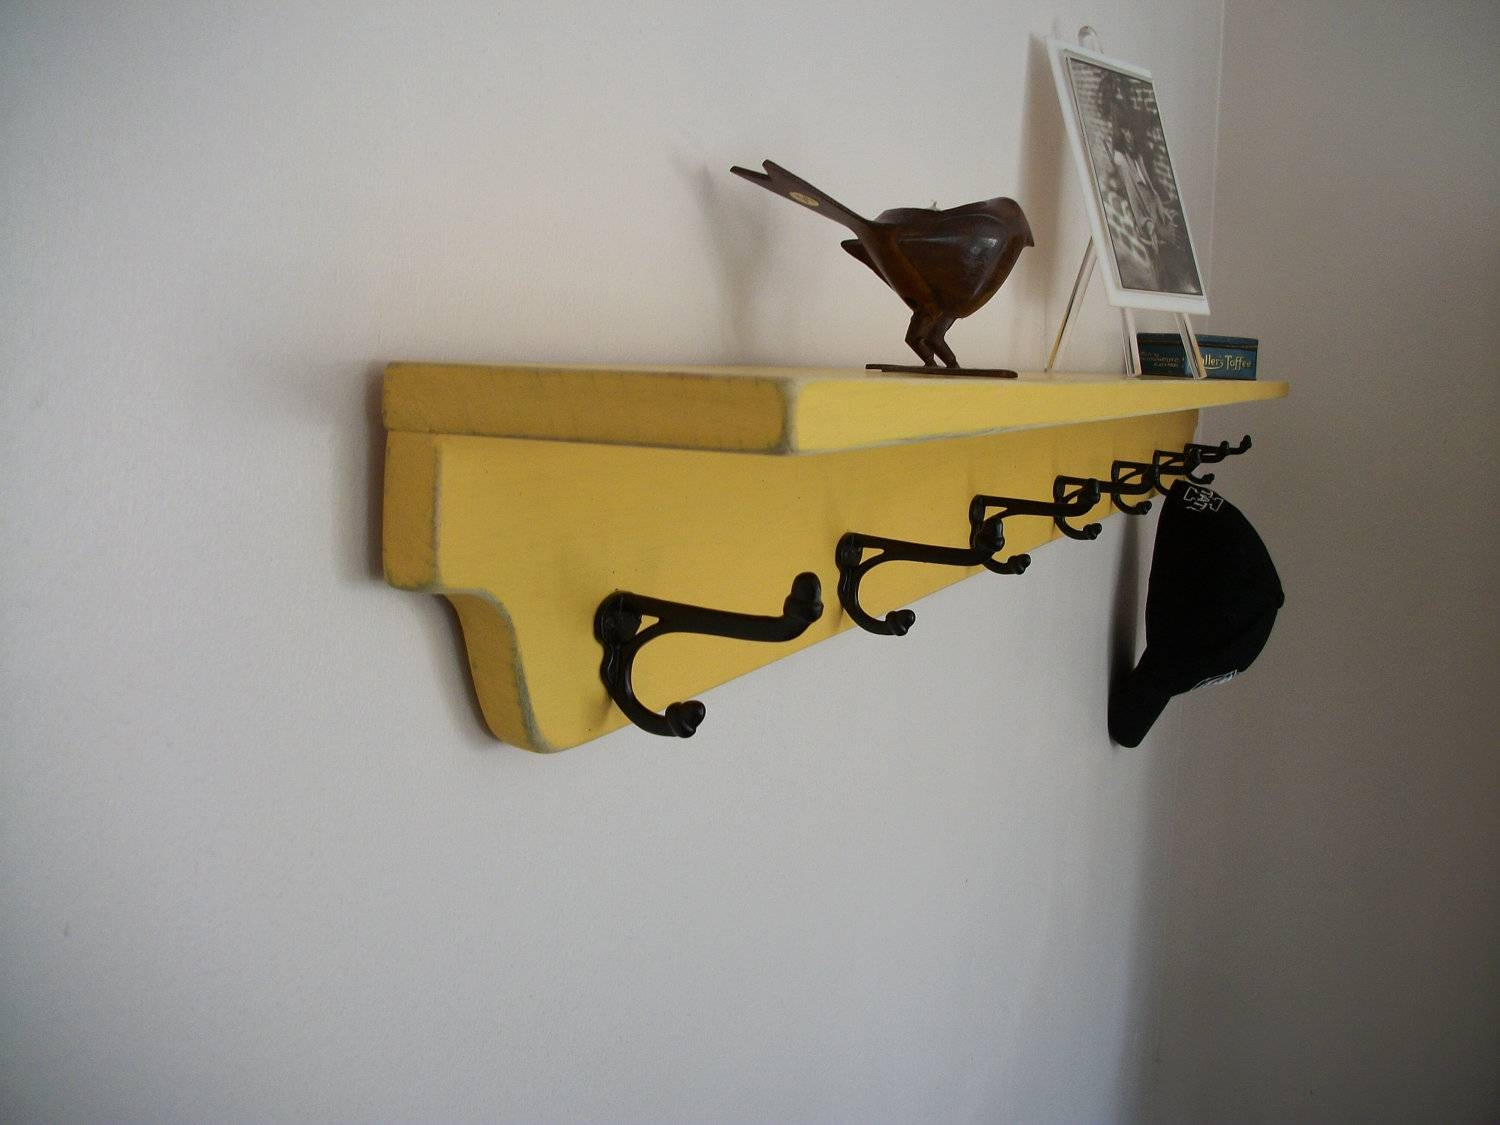 Remarkable Coat Hooks Pictures Design Inspiration – Tikspor Intended For Most Current Wall Art Coat Hooks (Gallery 8 of 20)